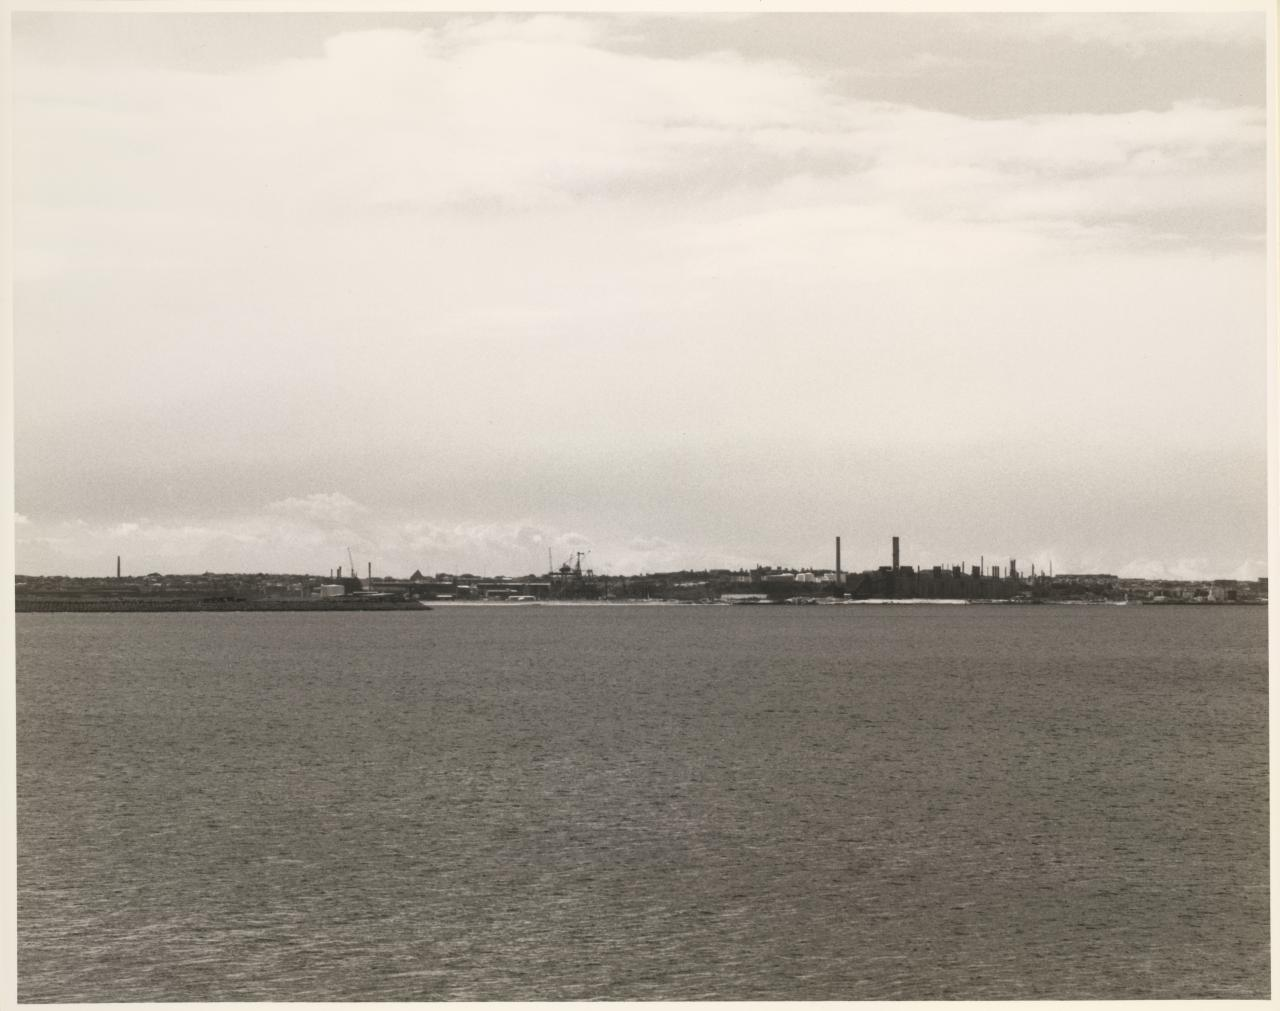 Caltex Kurnell refinery from Brighton-le-sands